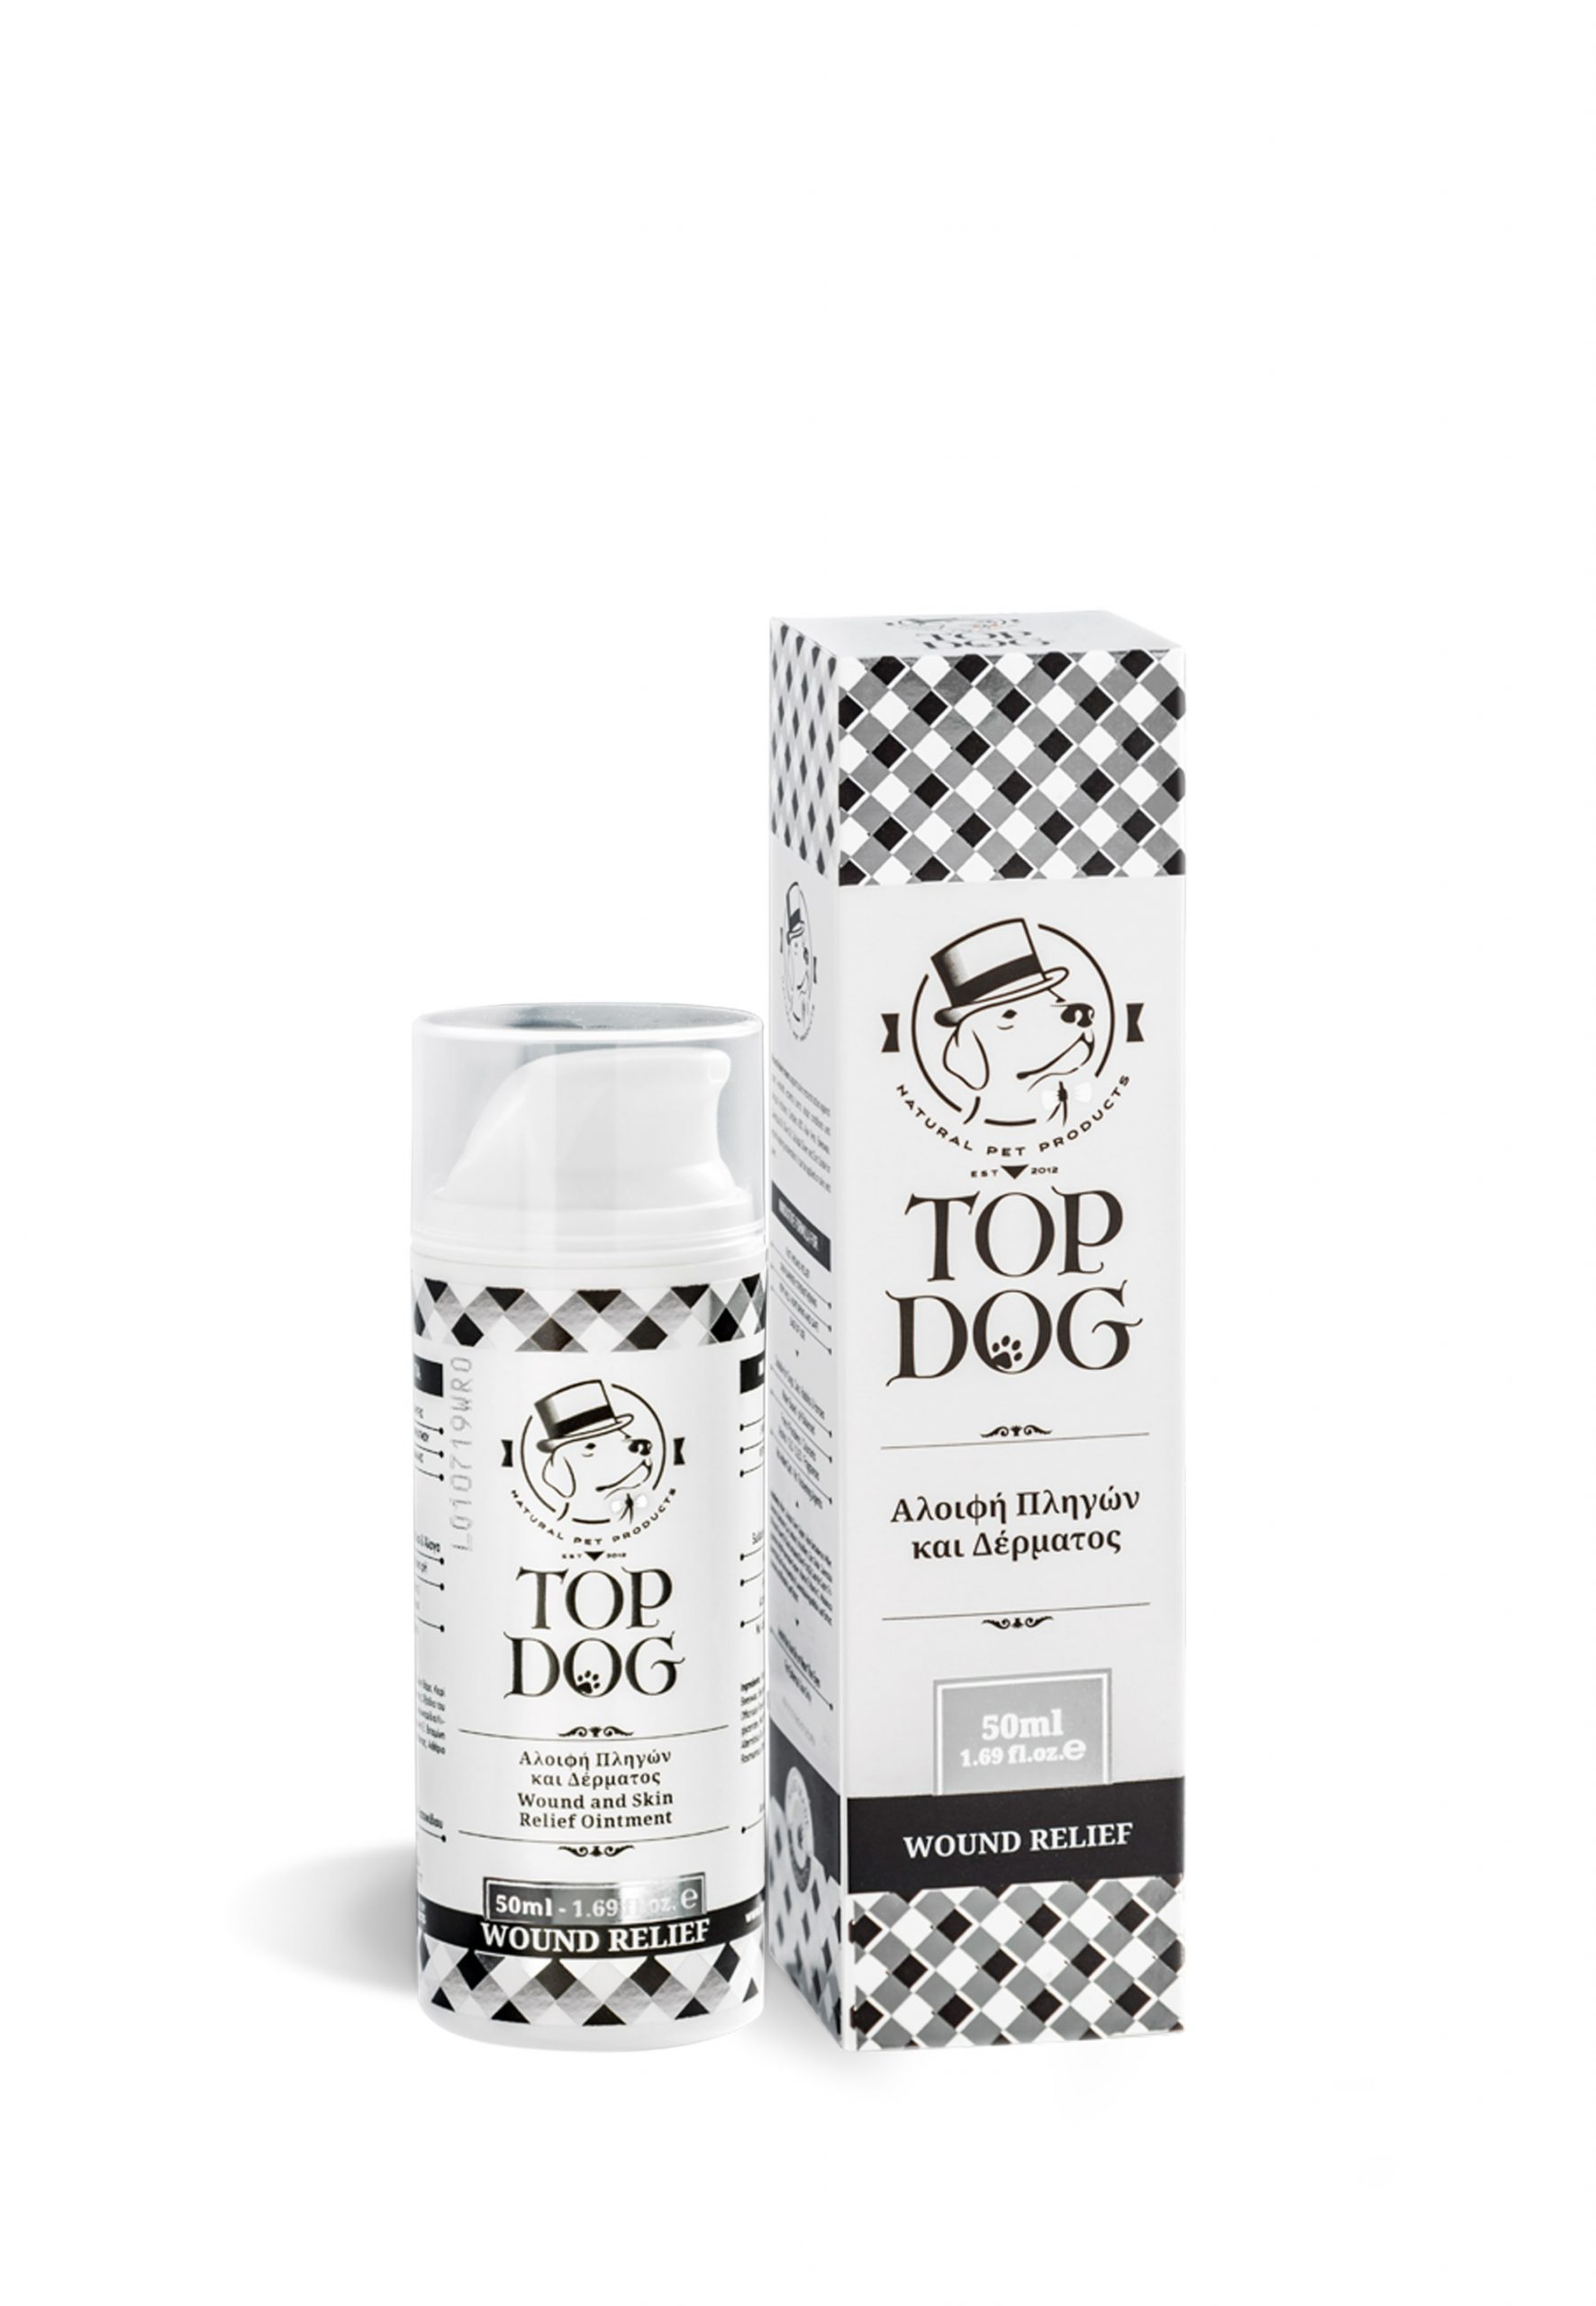 Top Dog Wound Relief 50ml